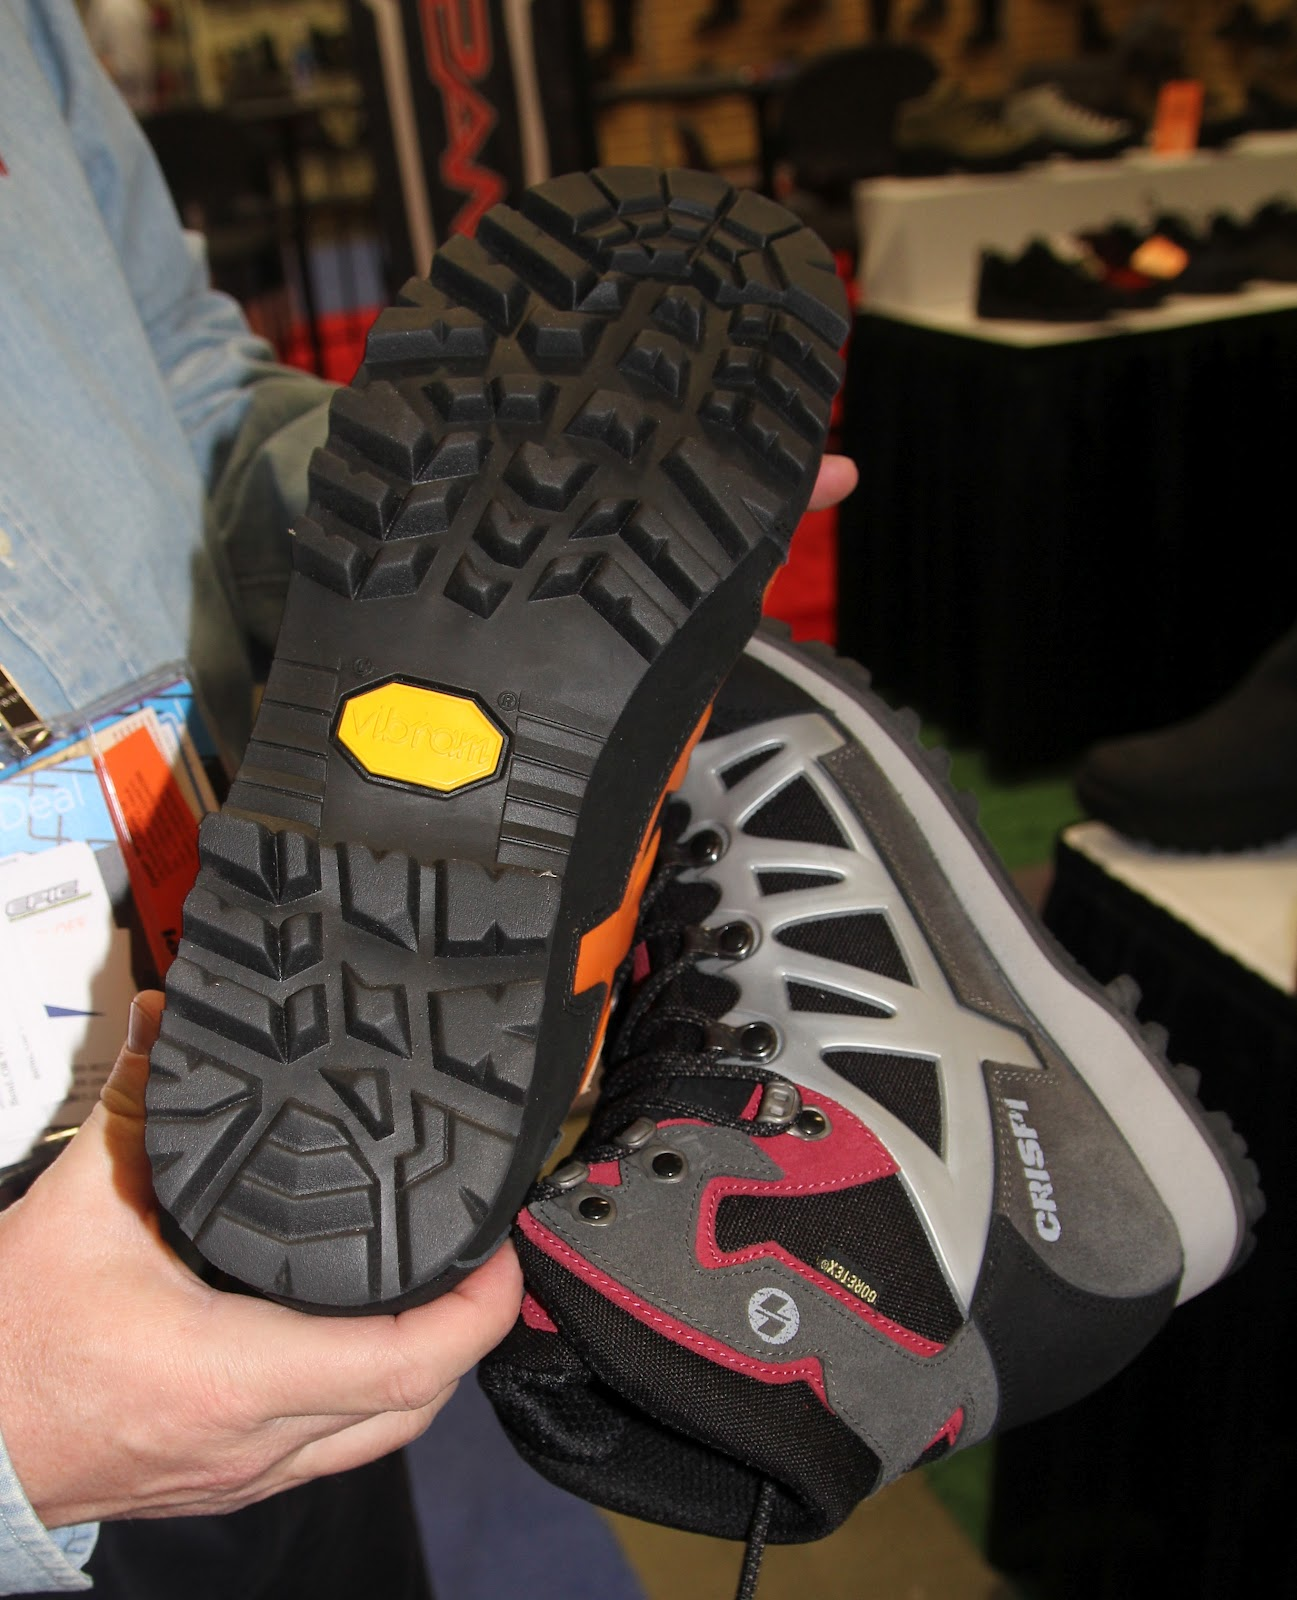 best sneakers 9027a c818d Vibram soles-Super Grip for super traction, high wear resistance, and  double density shock absorption